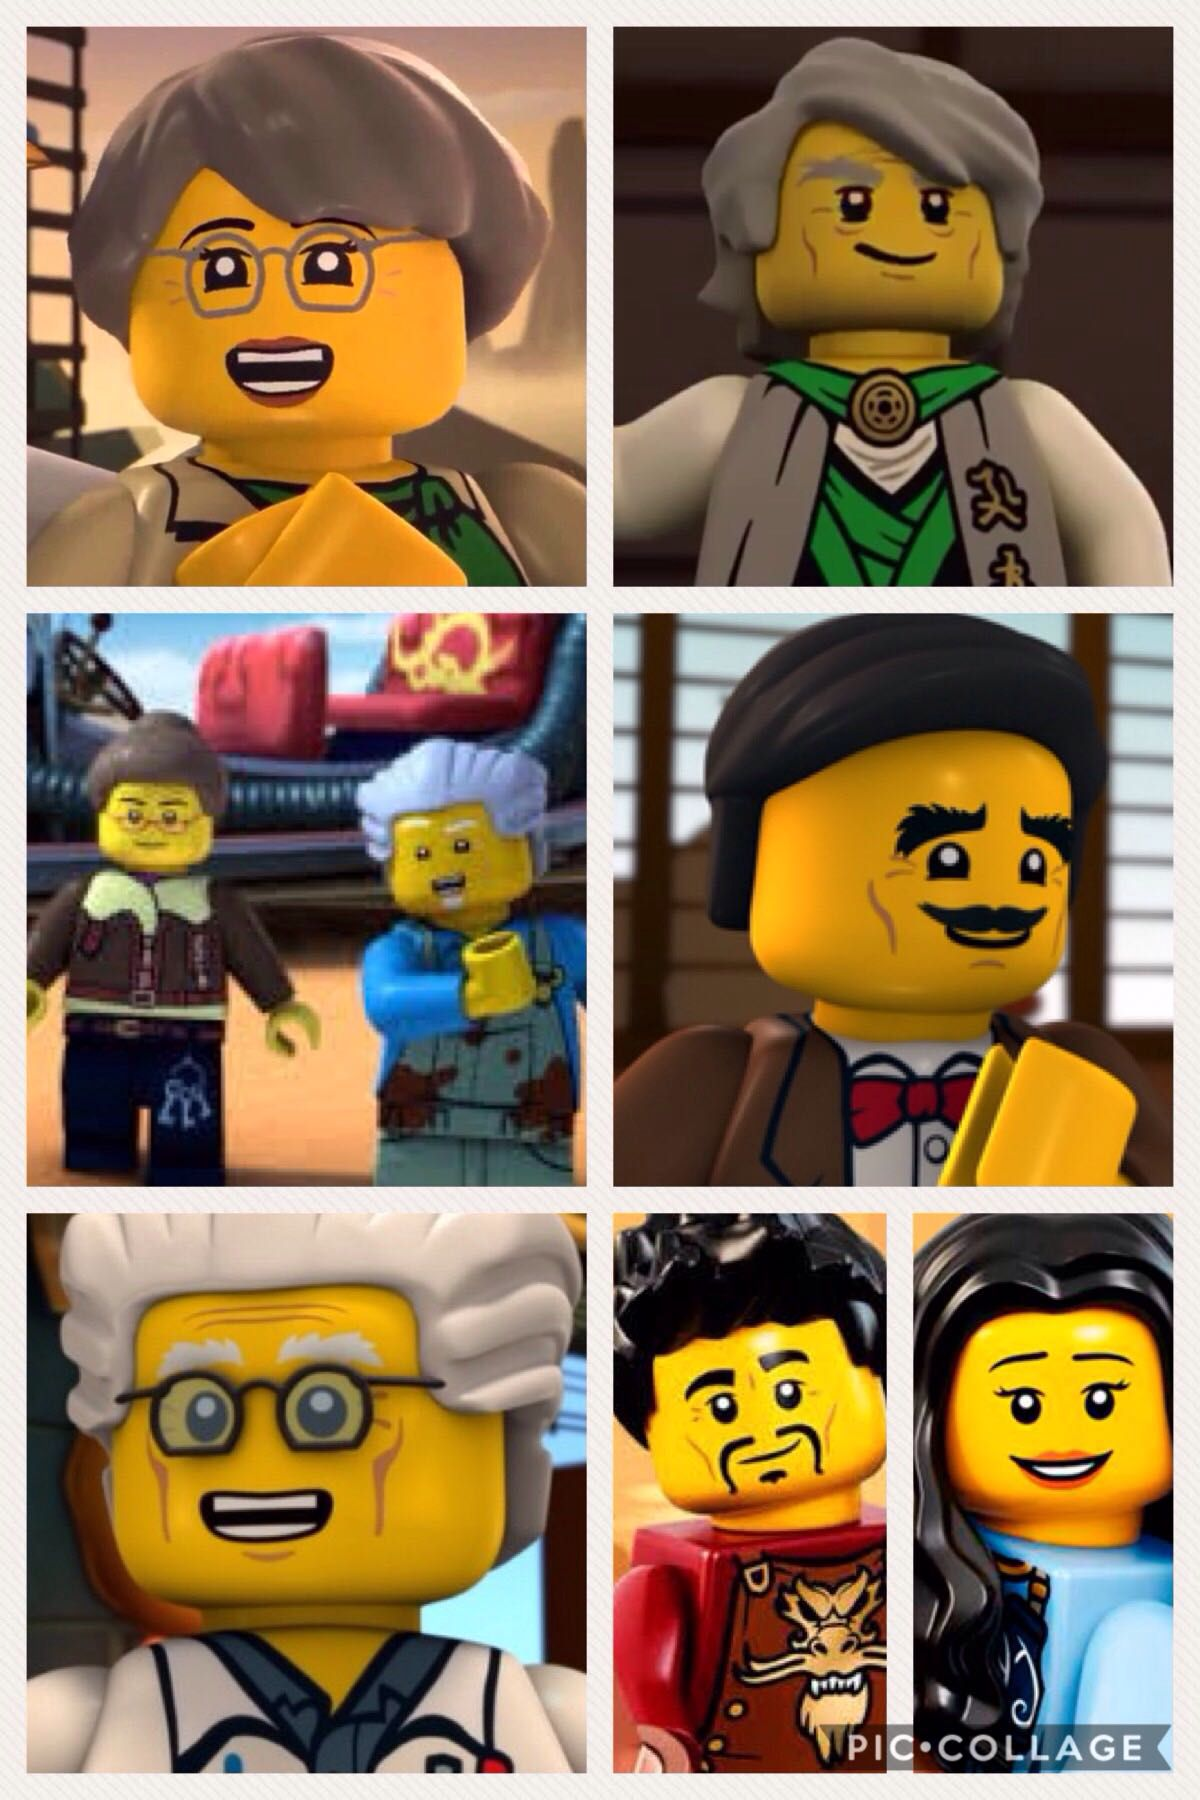 Ninjago Boyfriend Scenarios - When You Meet His Family - Wattpad